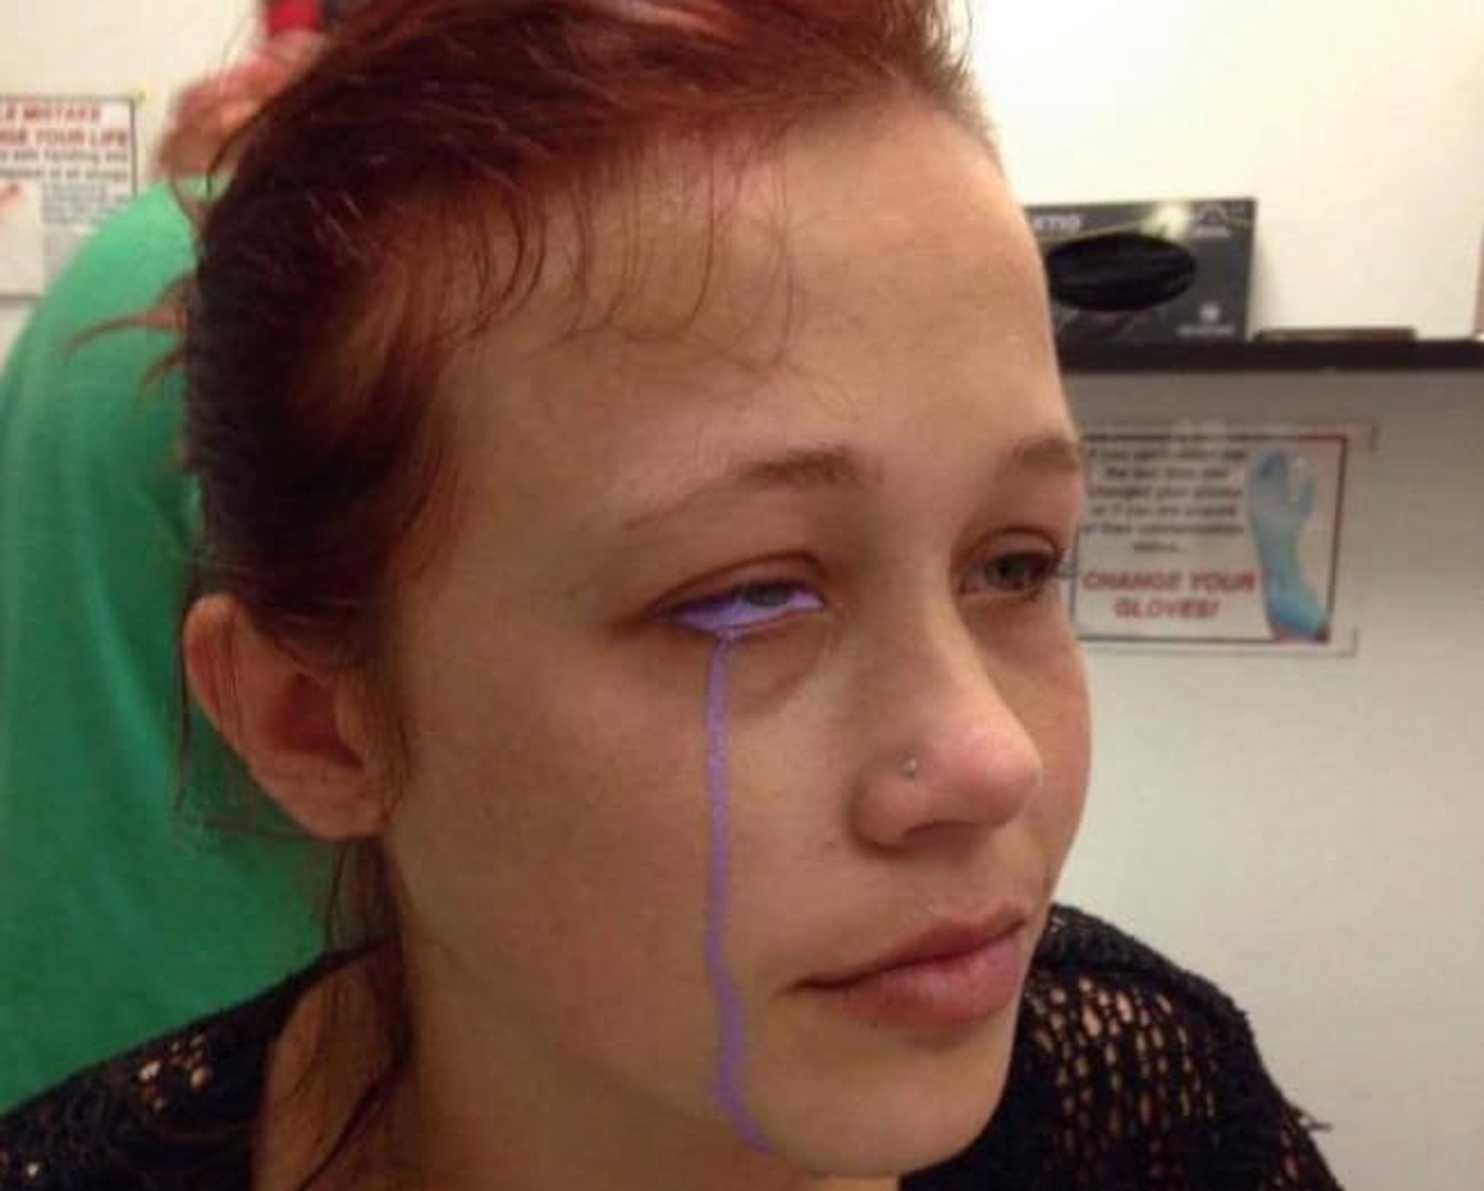 A Model Tattooed Her Eyeball Purple She Now Could Lose Her Eye The Washington Post